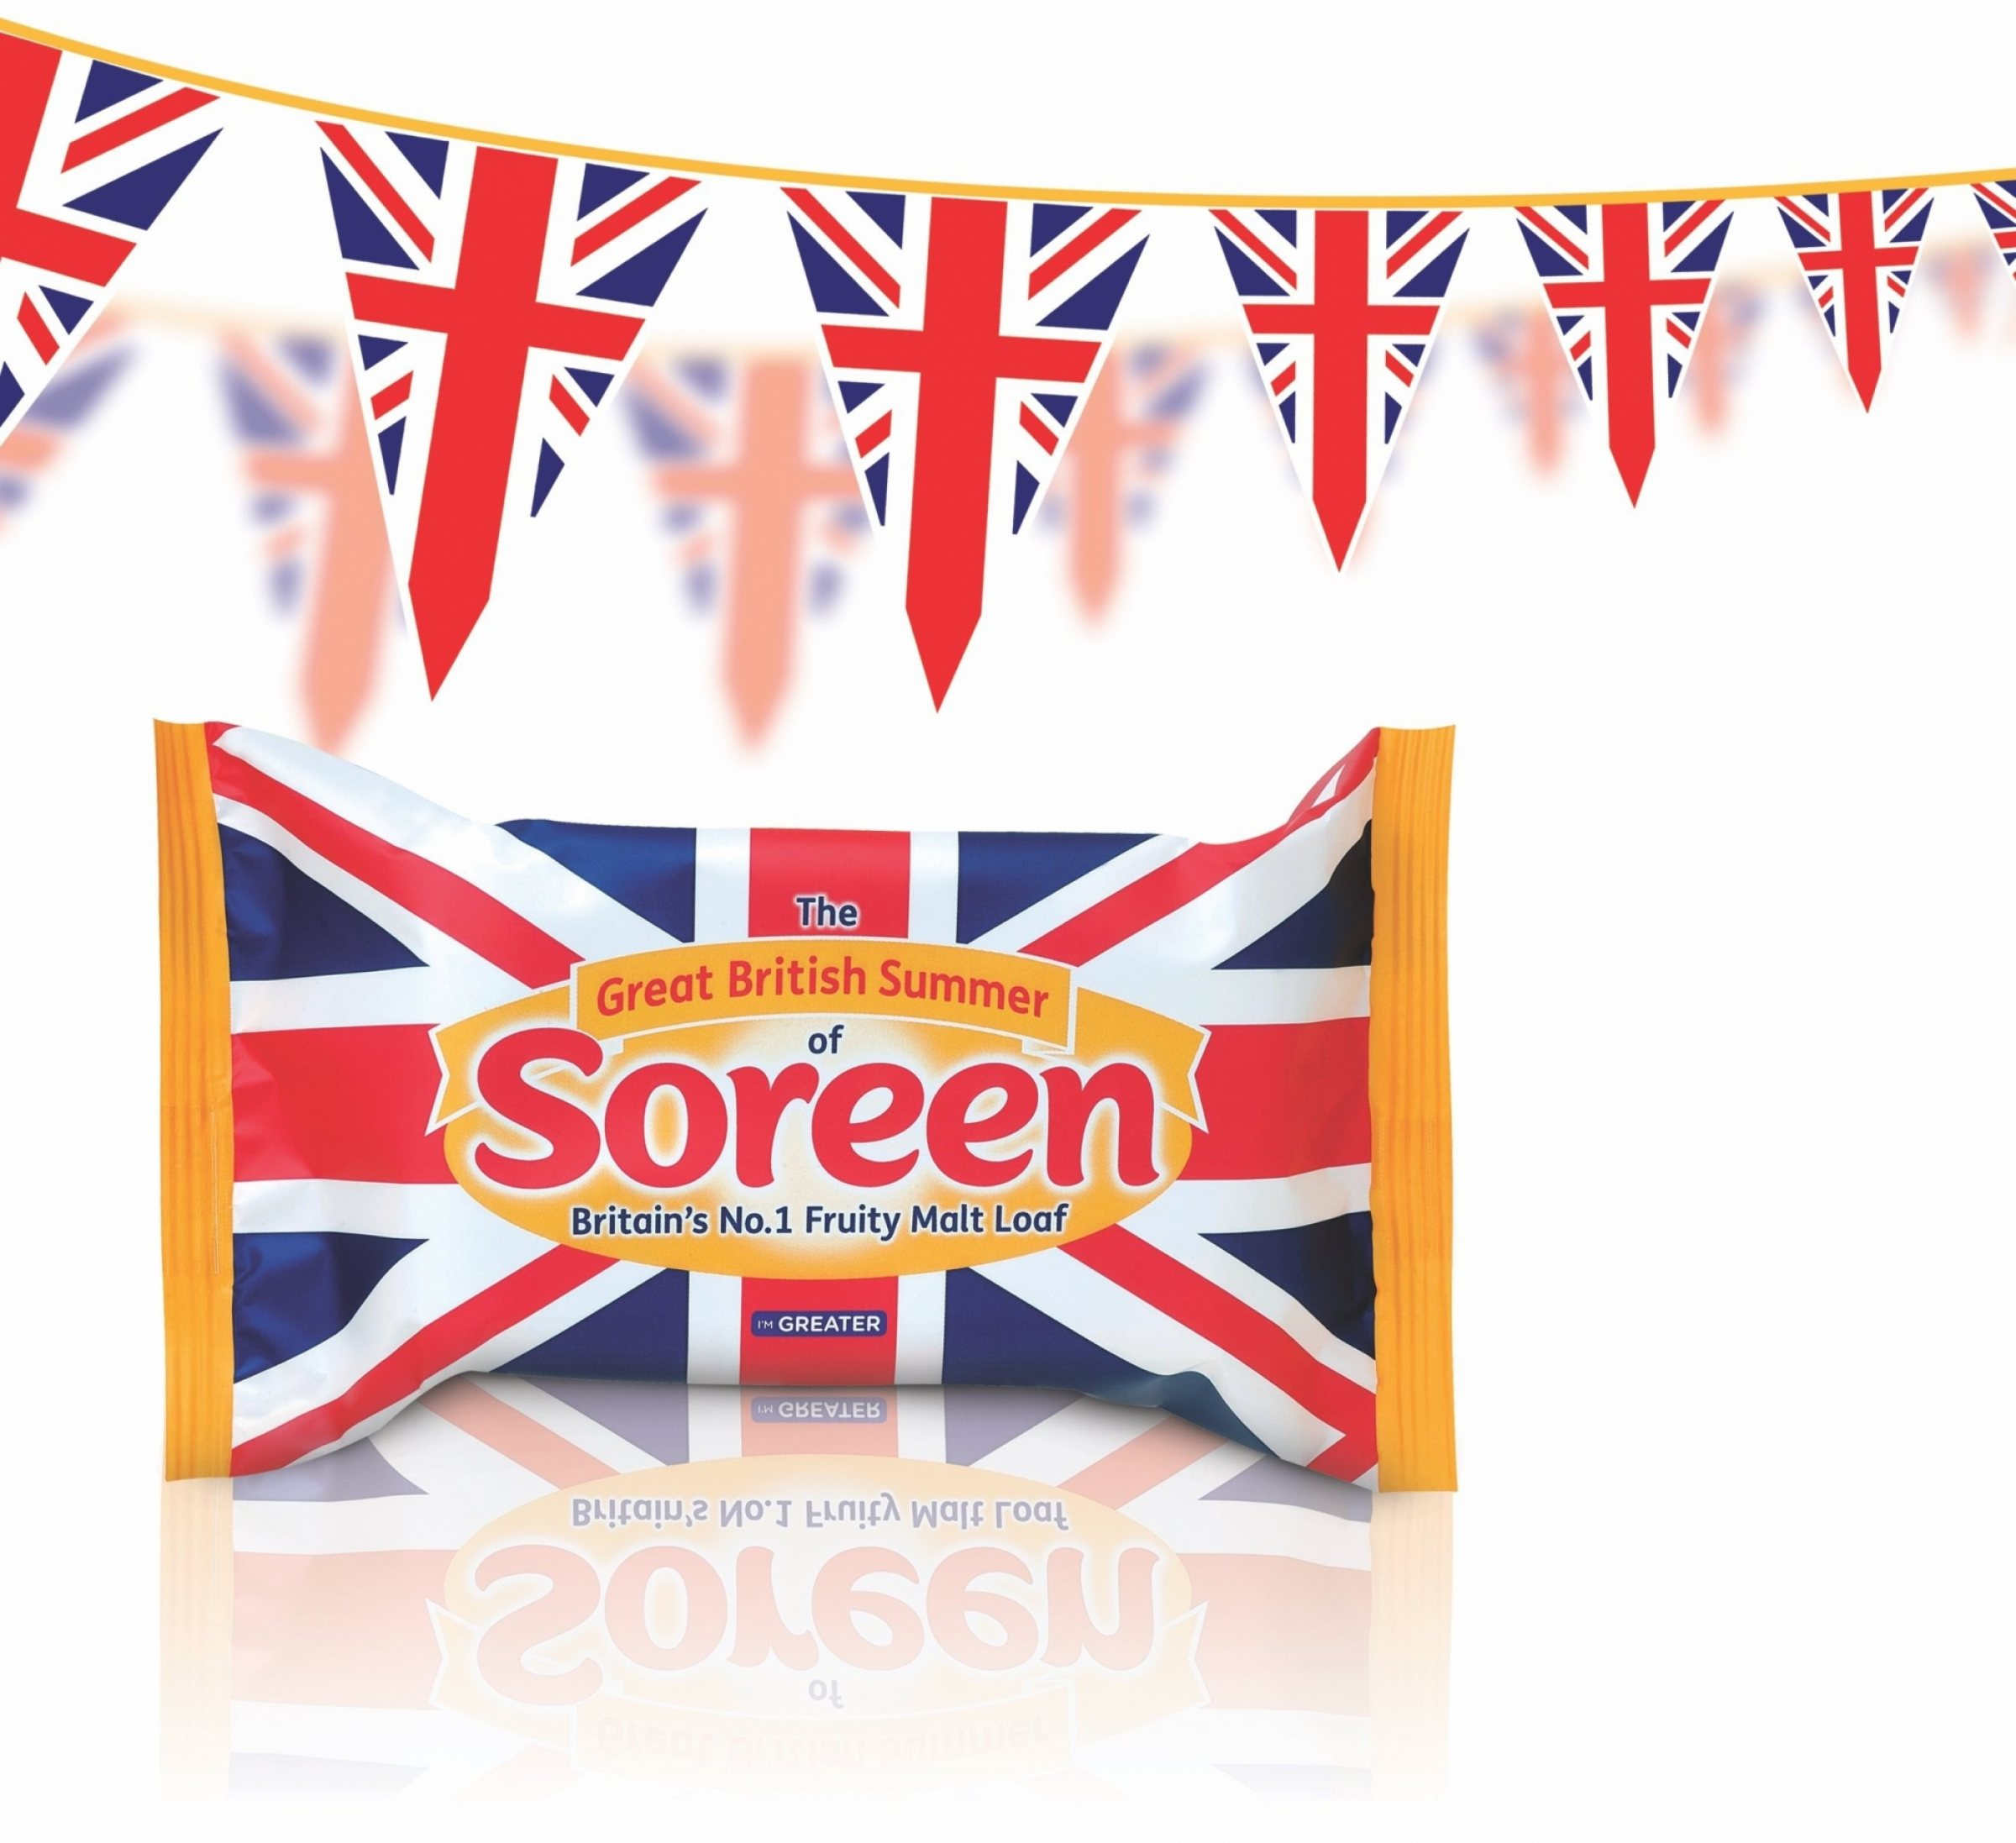 Soreen Food Drink News Artwork